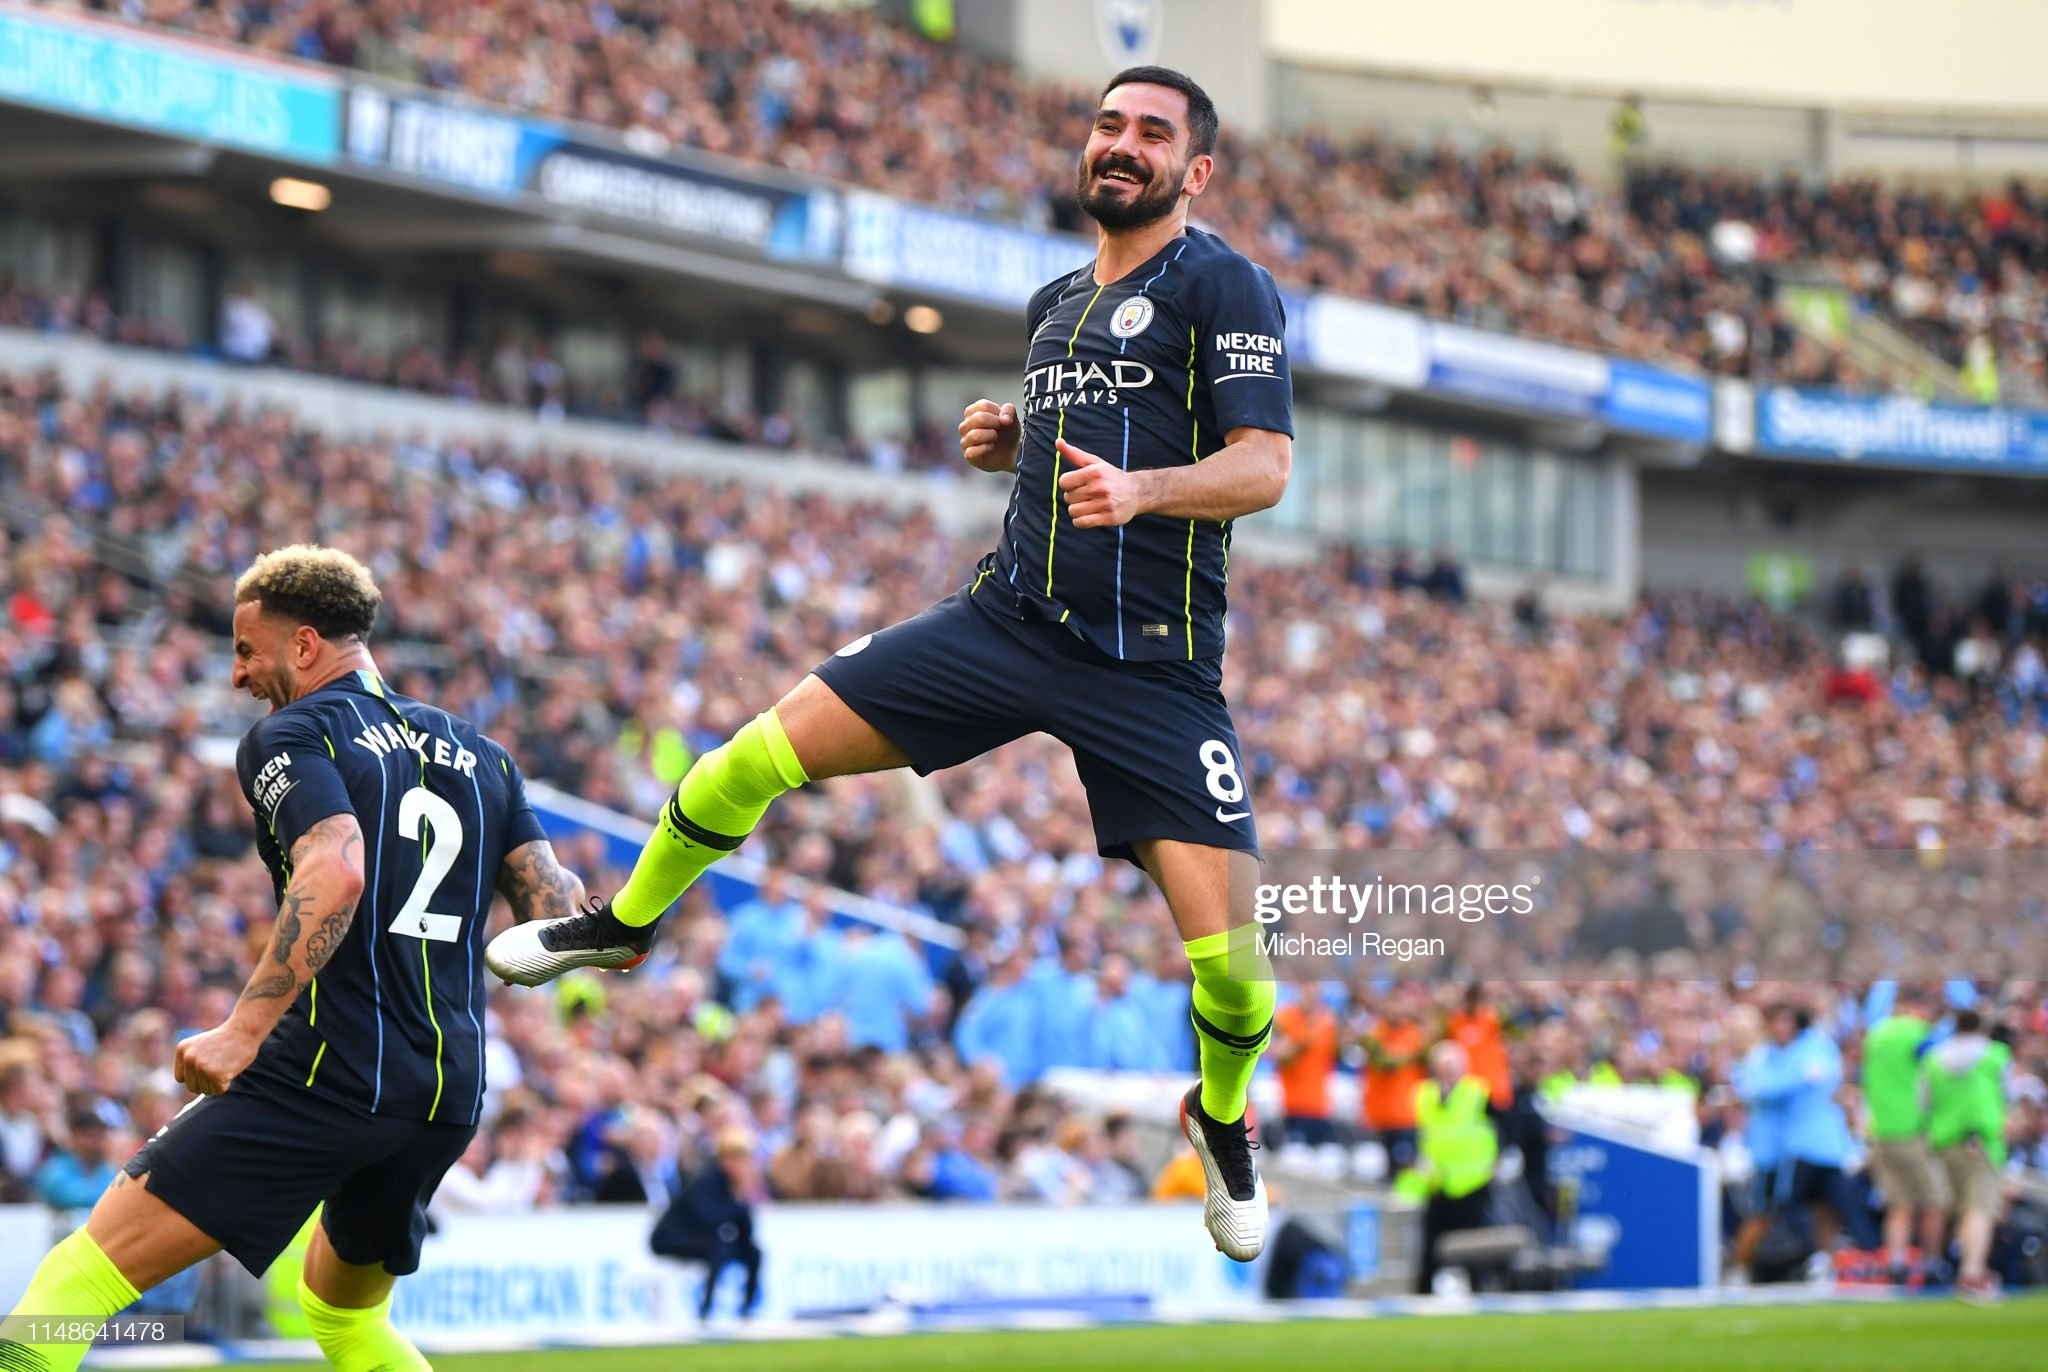 https://media.gettyimages.com/photos/ilkay-gundogan-of-manchester-city-celebrates-after-scoring-his-teams-picture-id1148641478?s=2048x2048